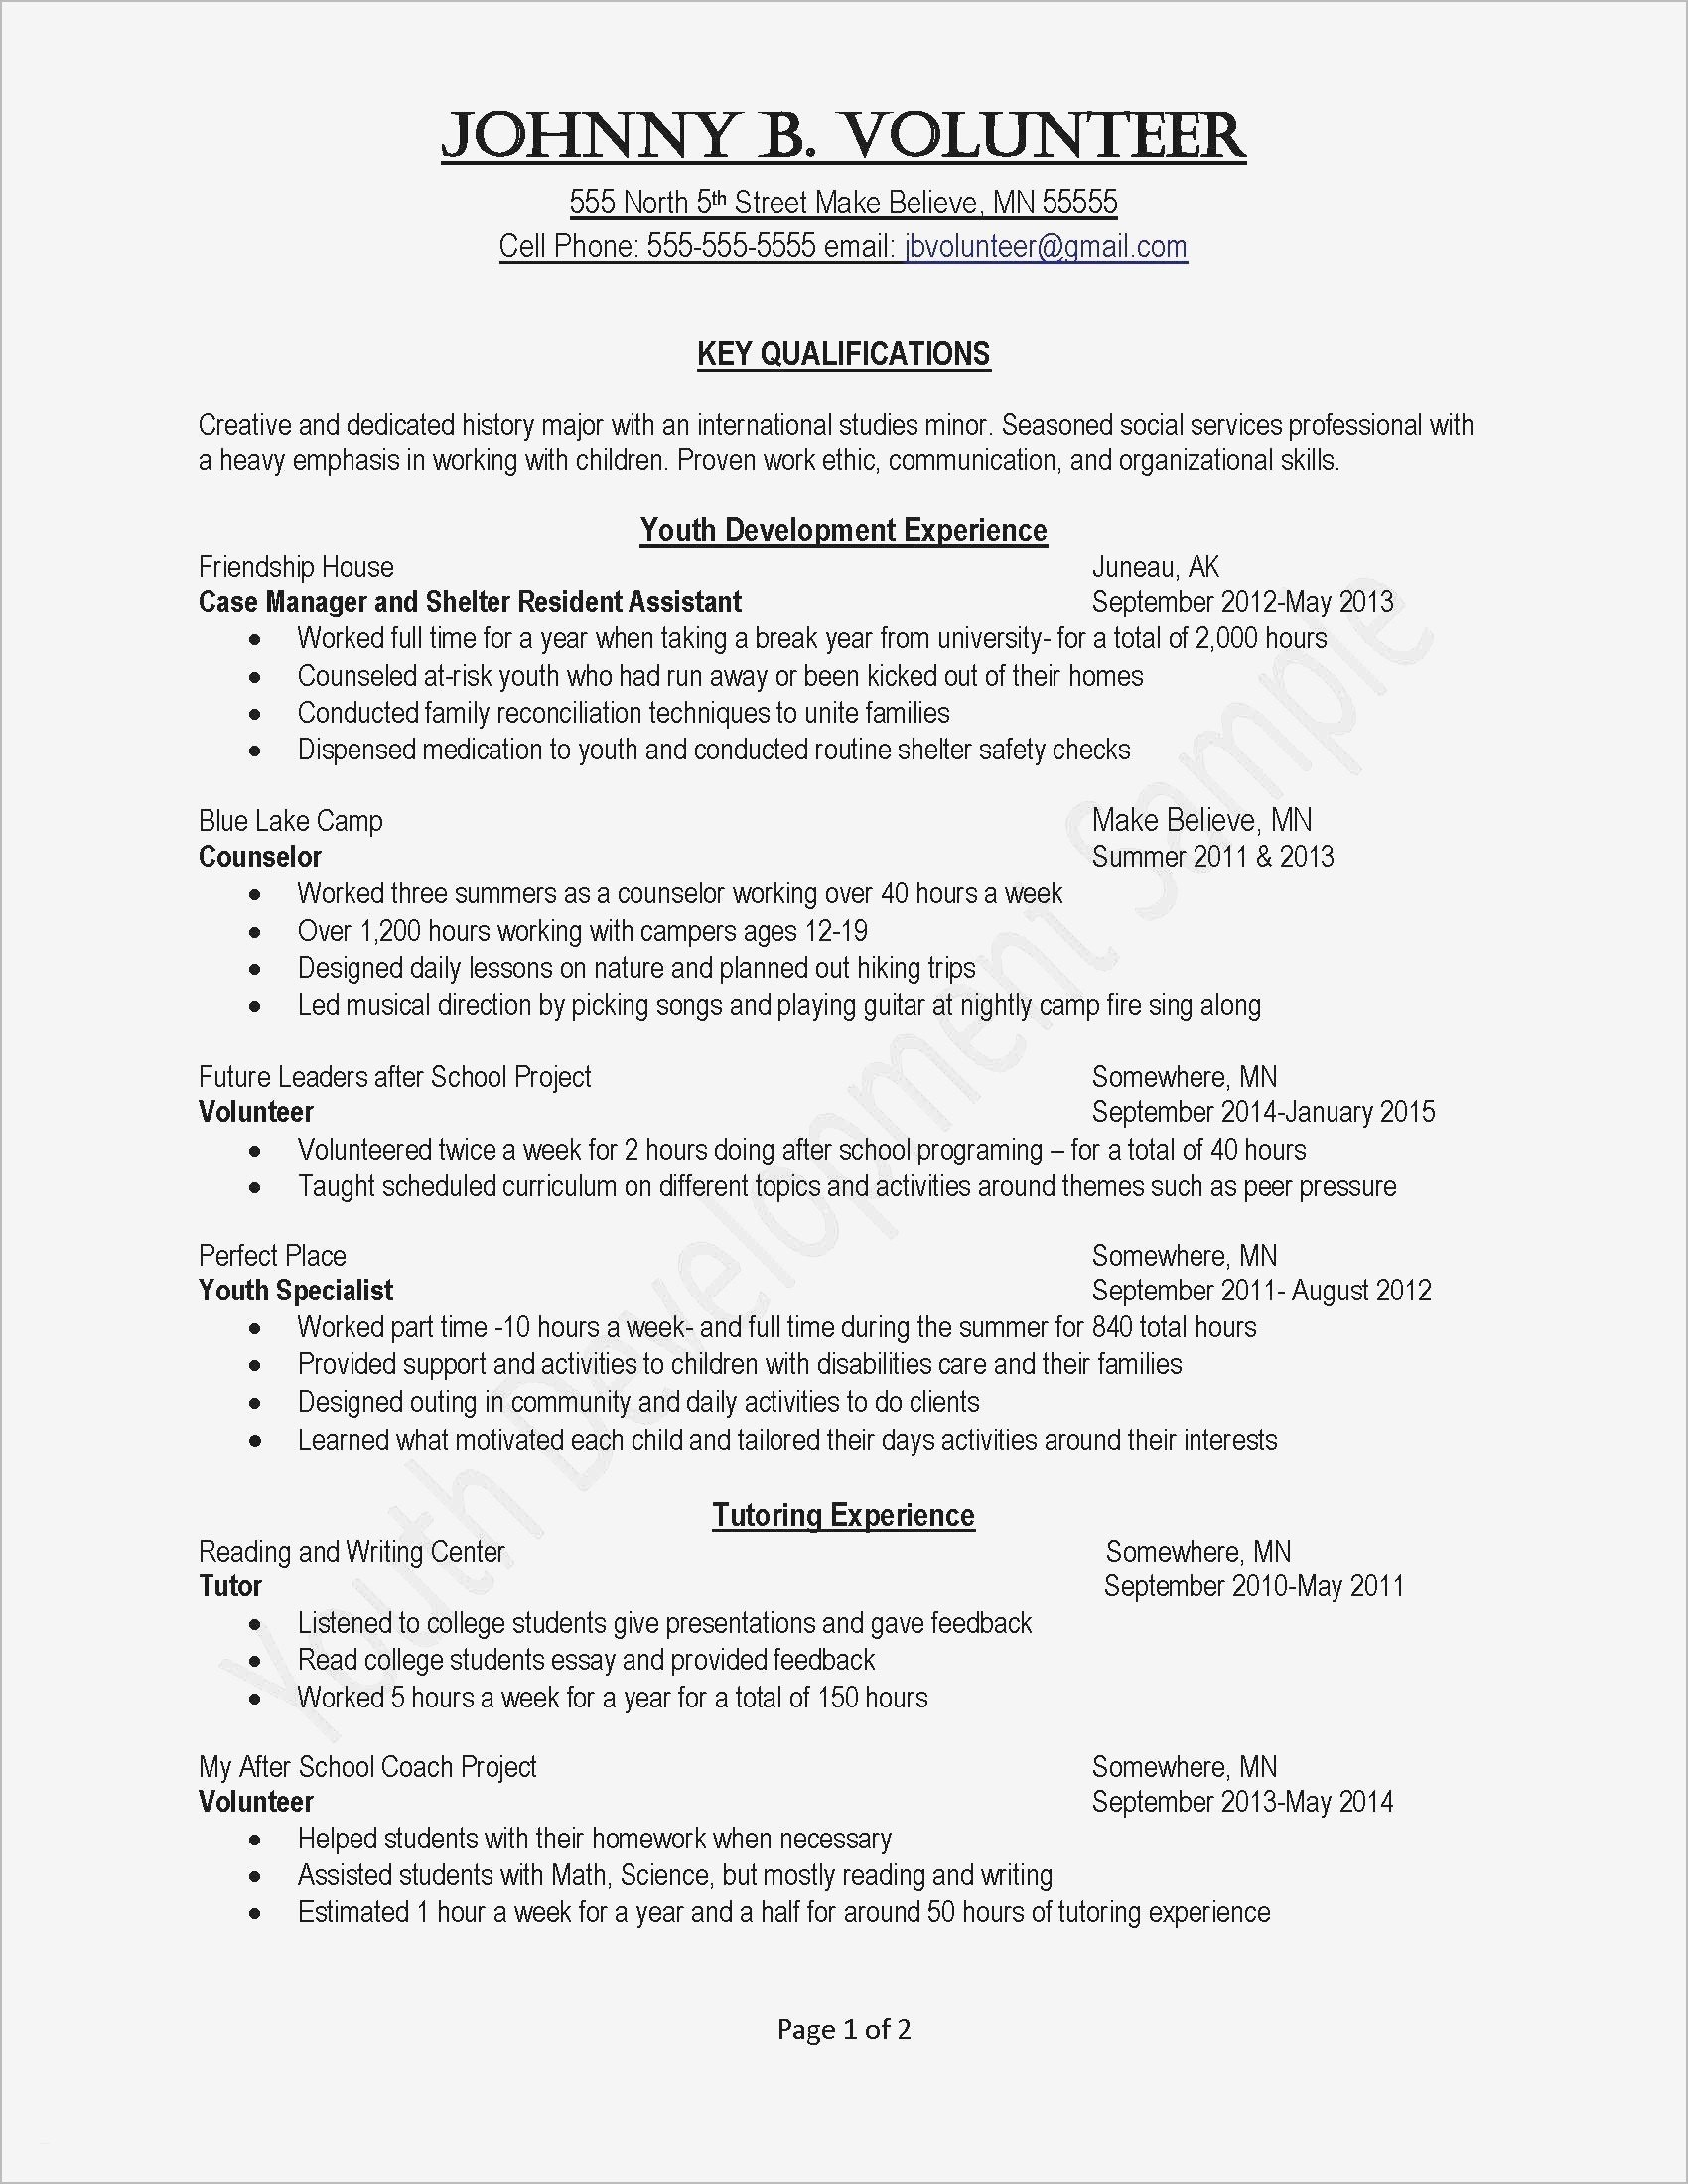 financial resume template example-Finance Resume Template Best Cfo Resume Template Inspirational Actor Resumes 0d – Letter Templates 16-t